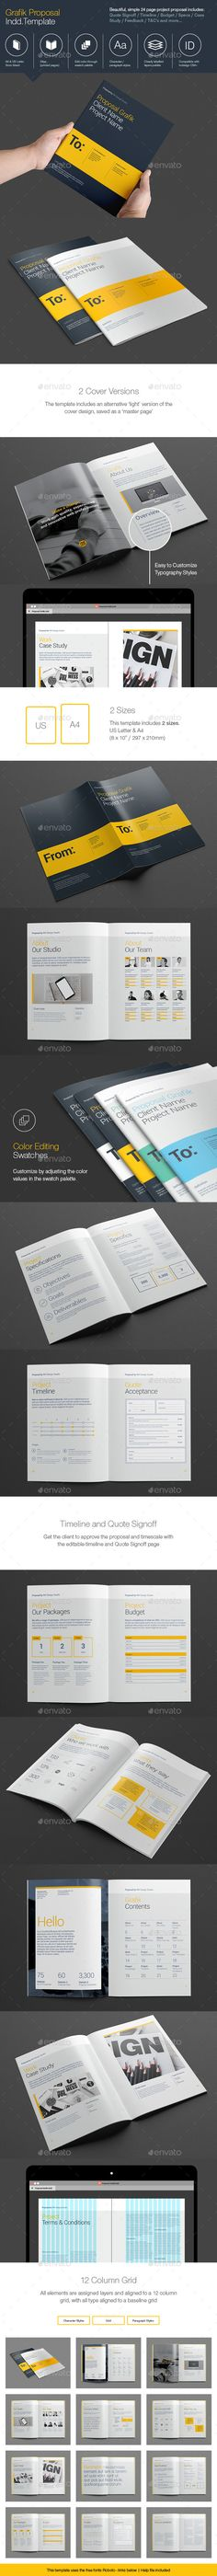 Sponsorship Prospectus Proposals, Template and Layouts - sponsorship proposal template